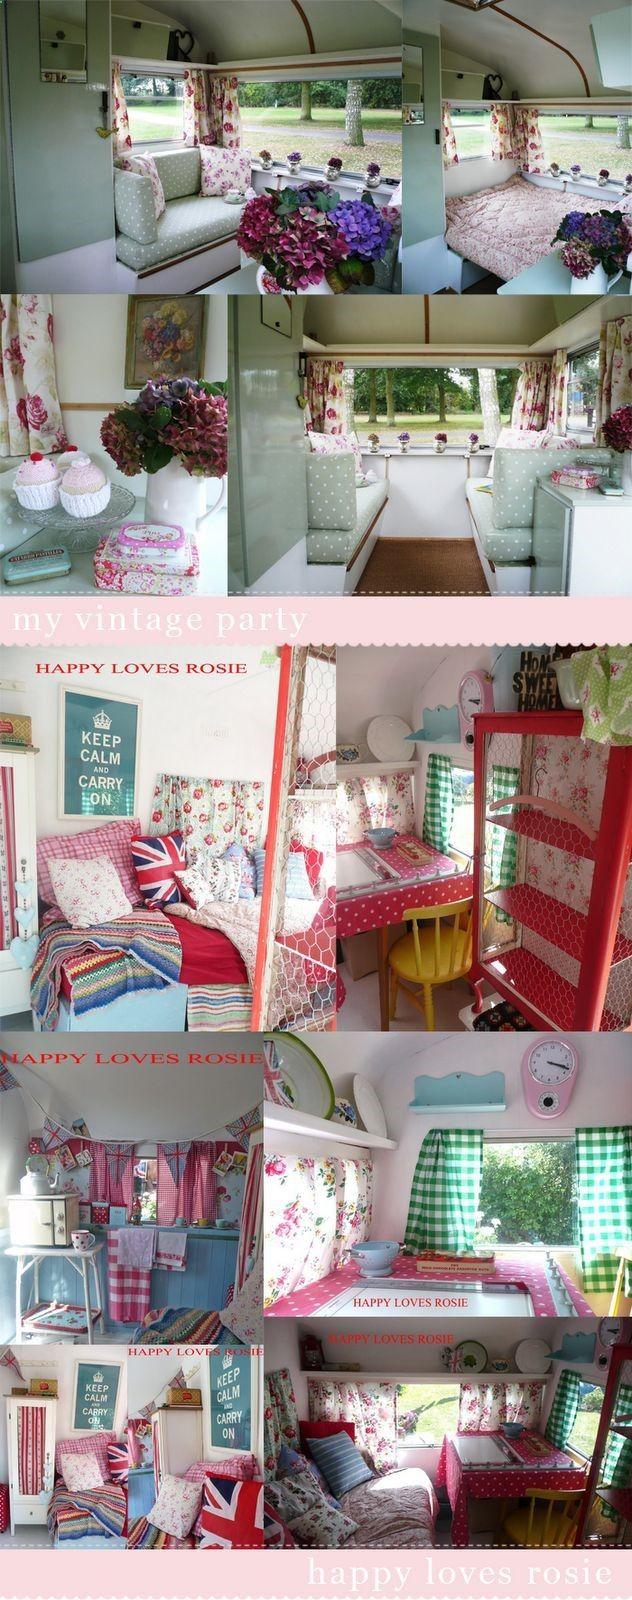 Inspiring makeovers | Lovelie: A Creative  Inspirational Design Blog